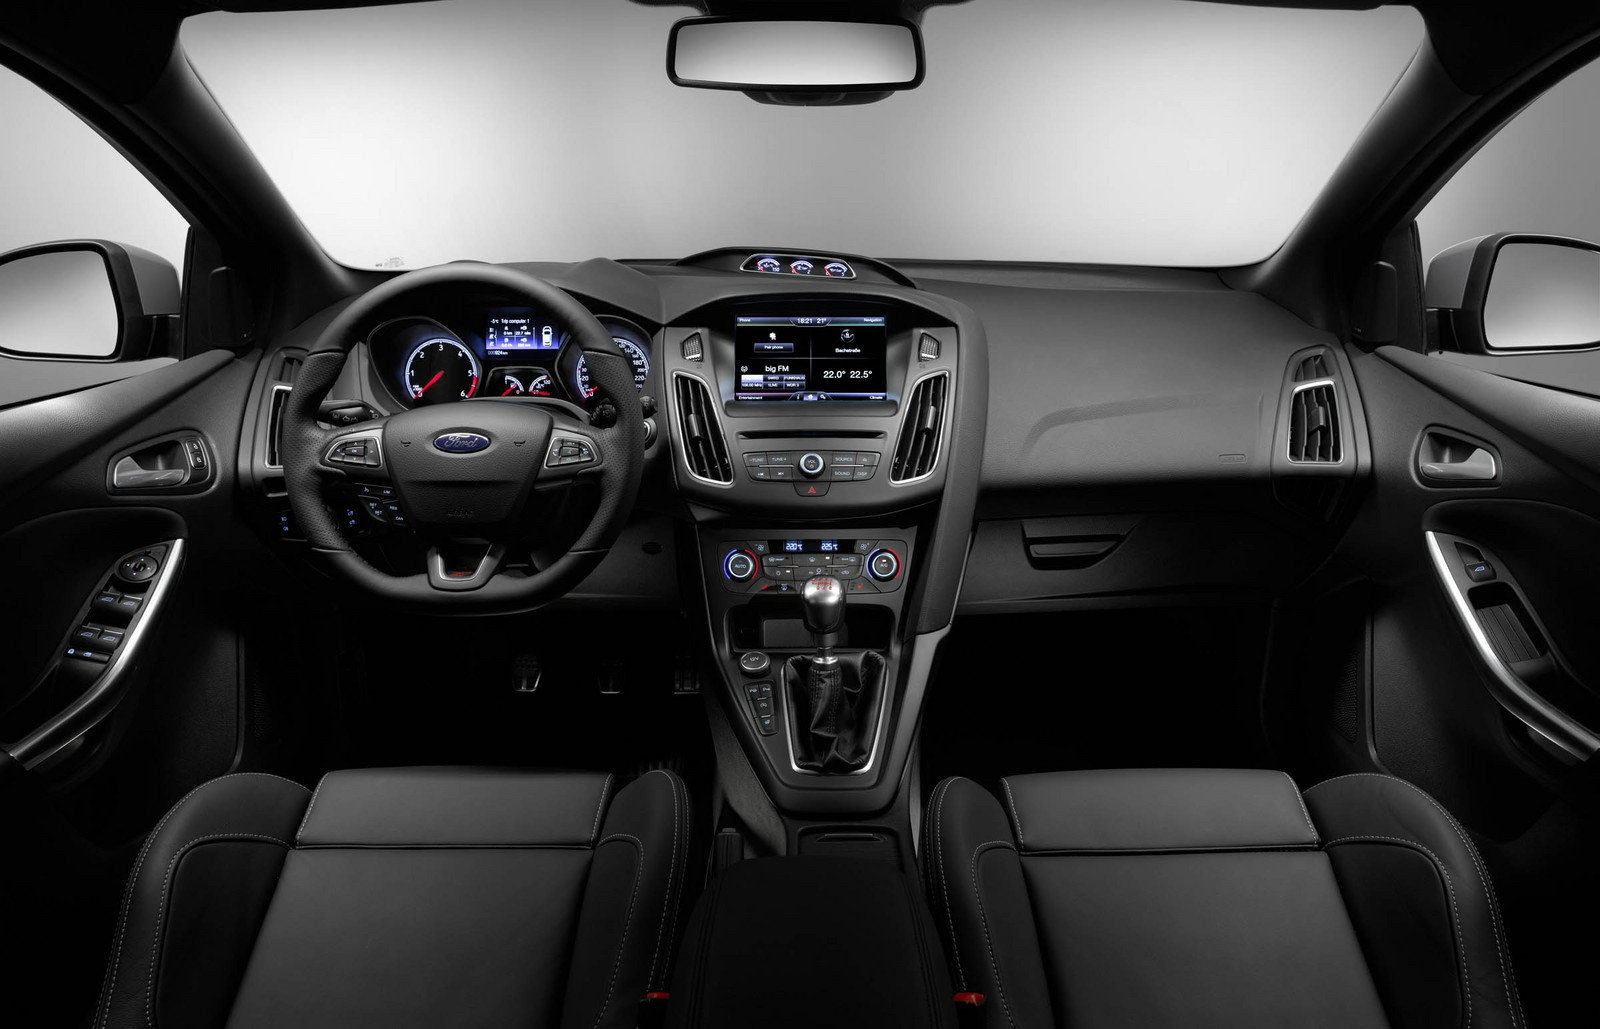 stunning-design-of-the-black-dash-ideas-with-black-seats-and-steering-wheels-ideas-as-the-ford-focus-facelift-2015-interior